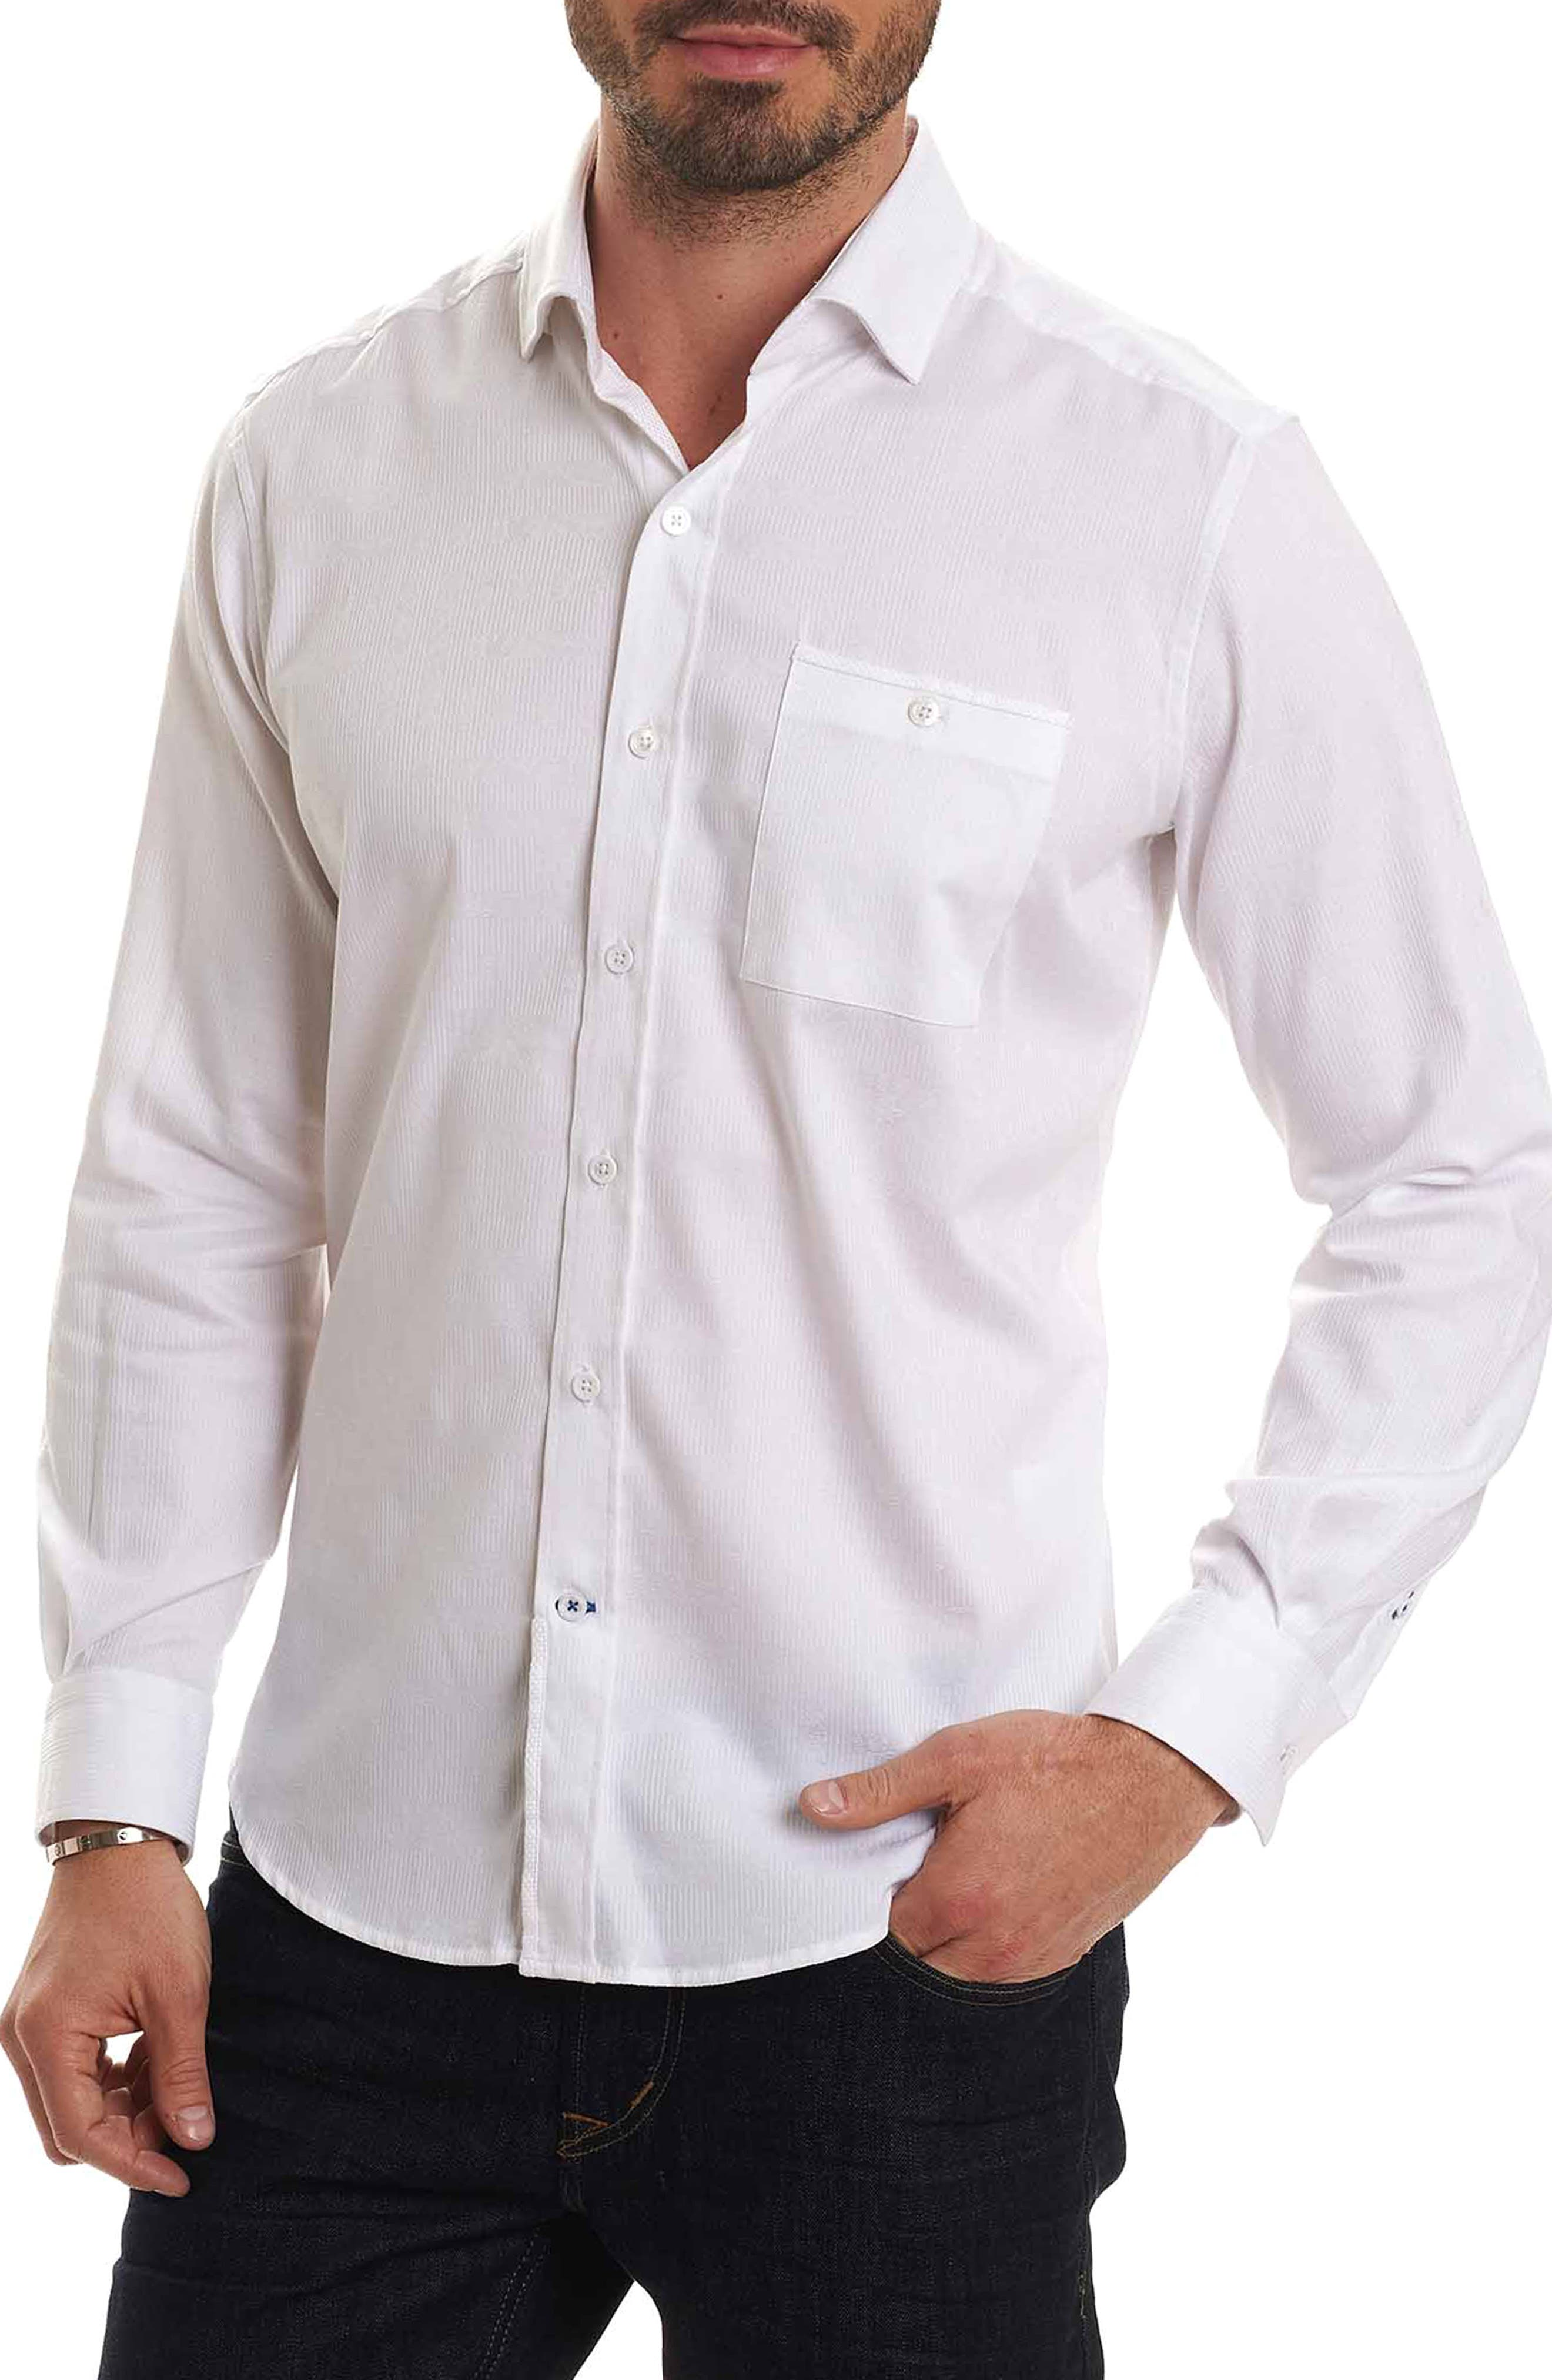 Christopher Print Sport Shirt,                             Main thumbnail 1, color,                             White